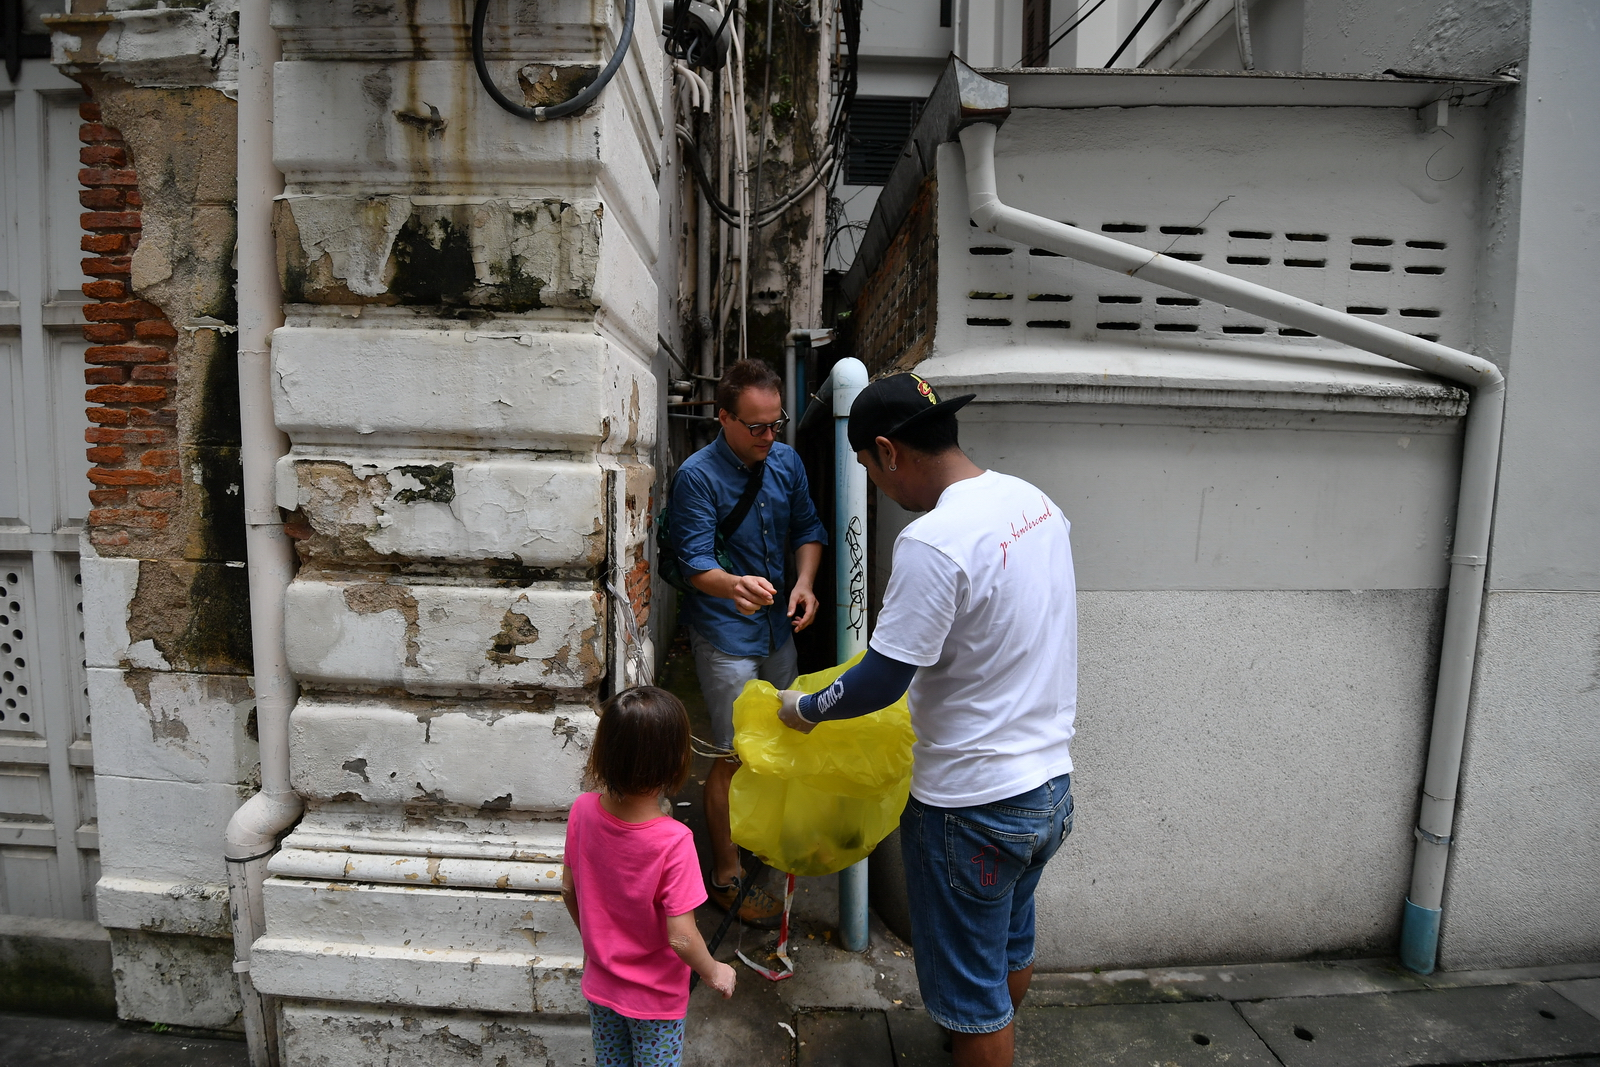 PTendercool-Event-Clean Up The World-190921-052